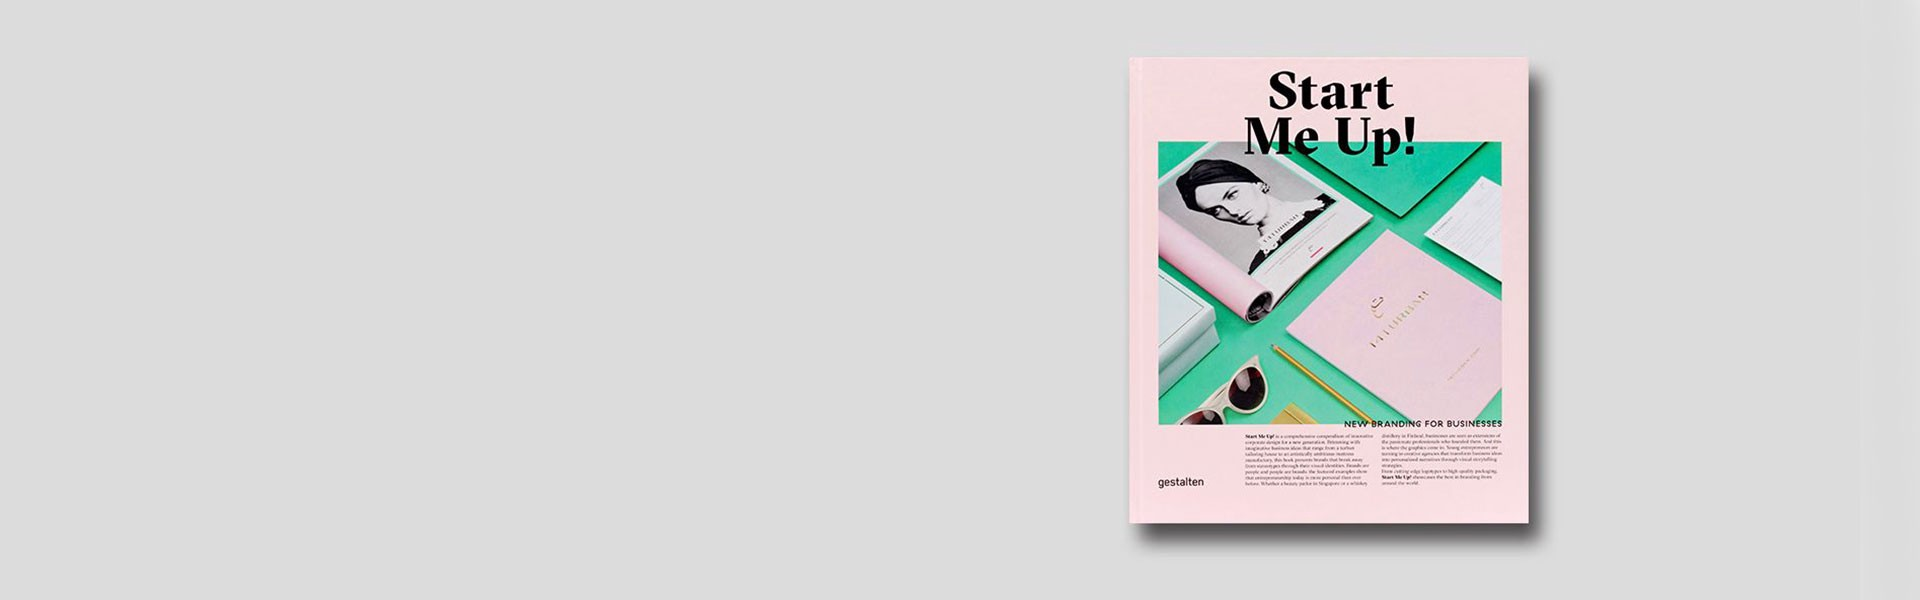 50 Essential Books Every Graphic Designer Should Read 2018 Update By Shillington Education Prototypr